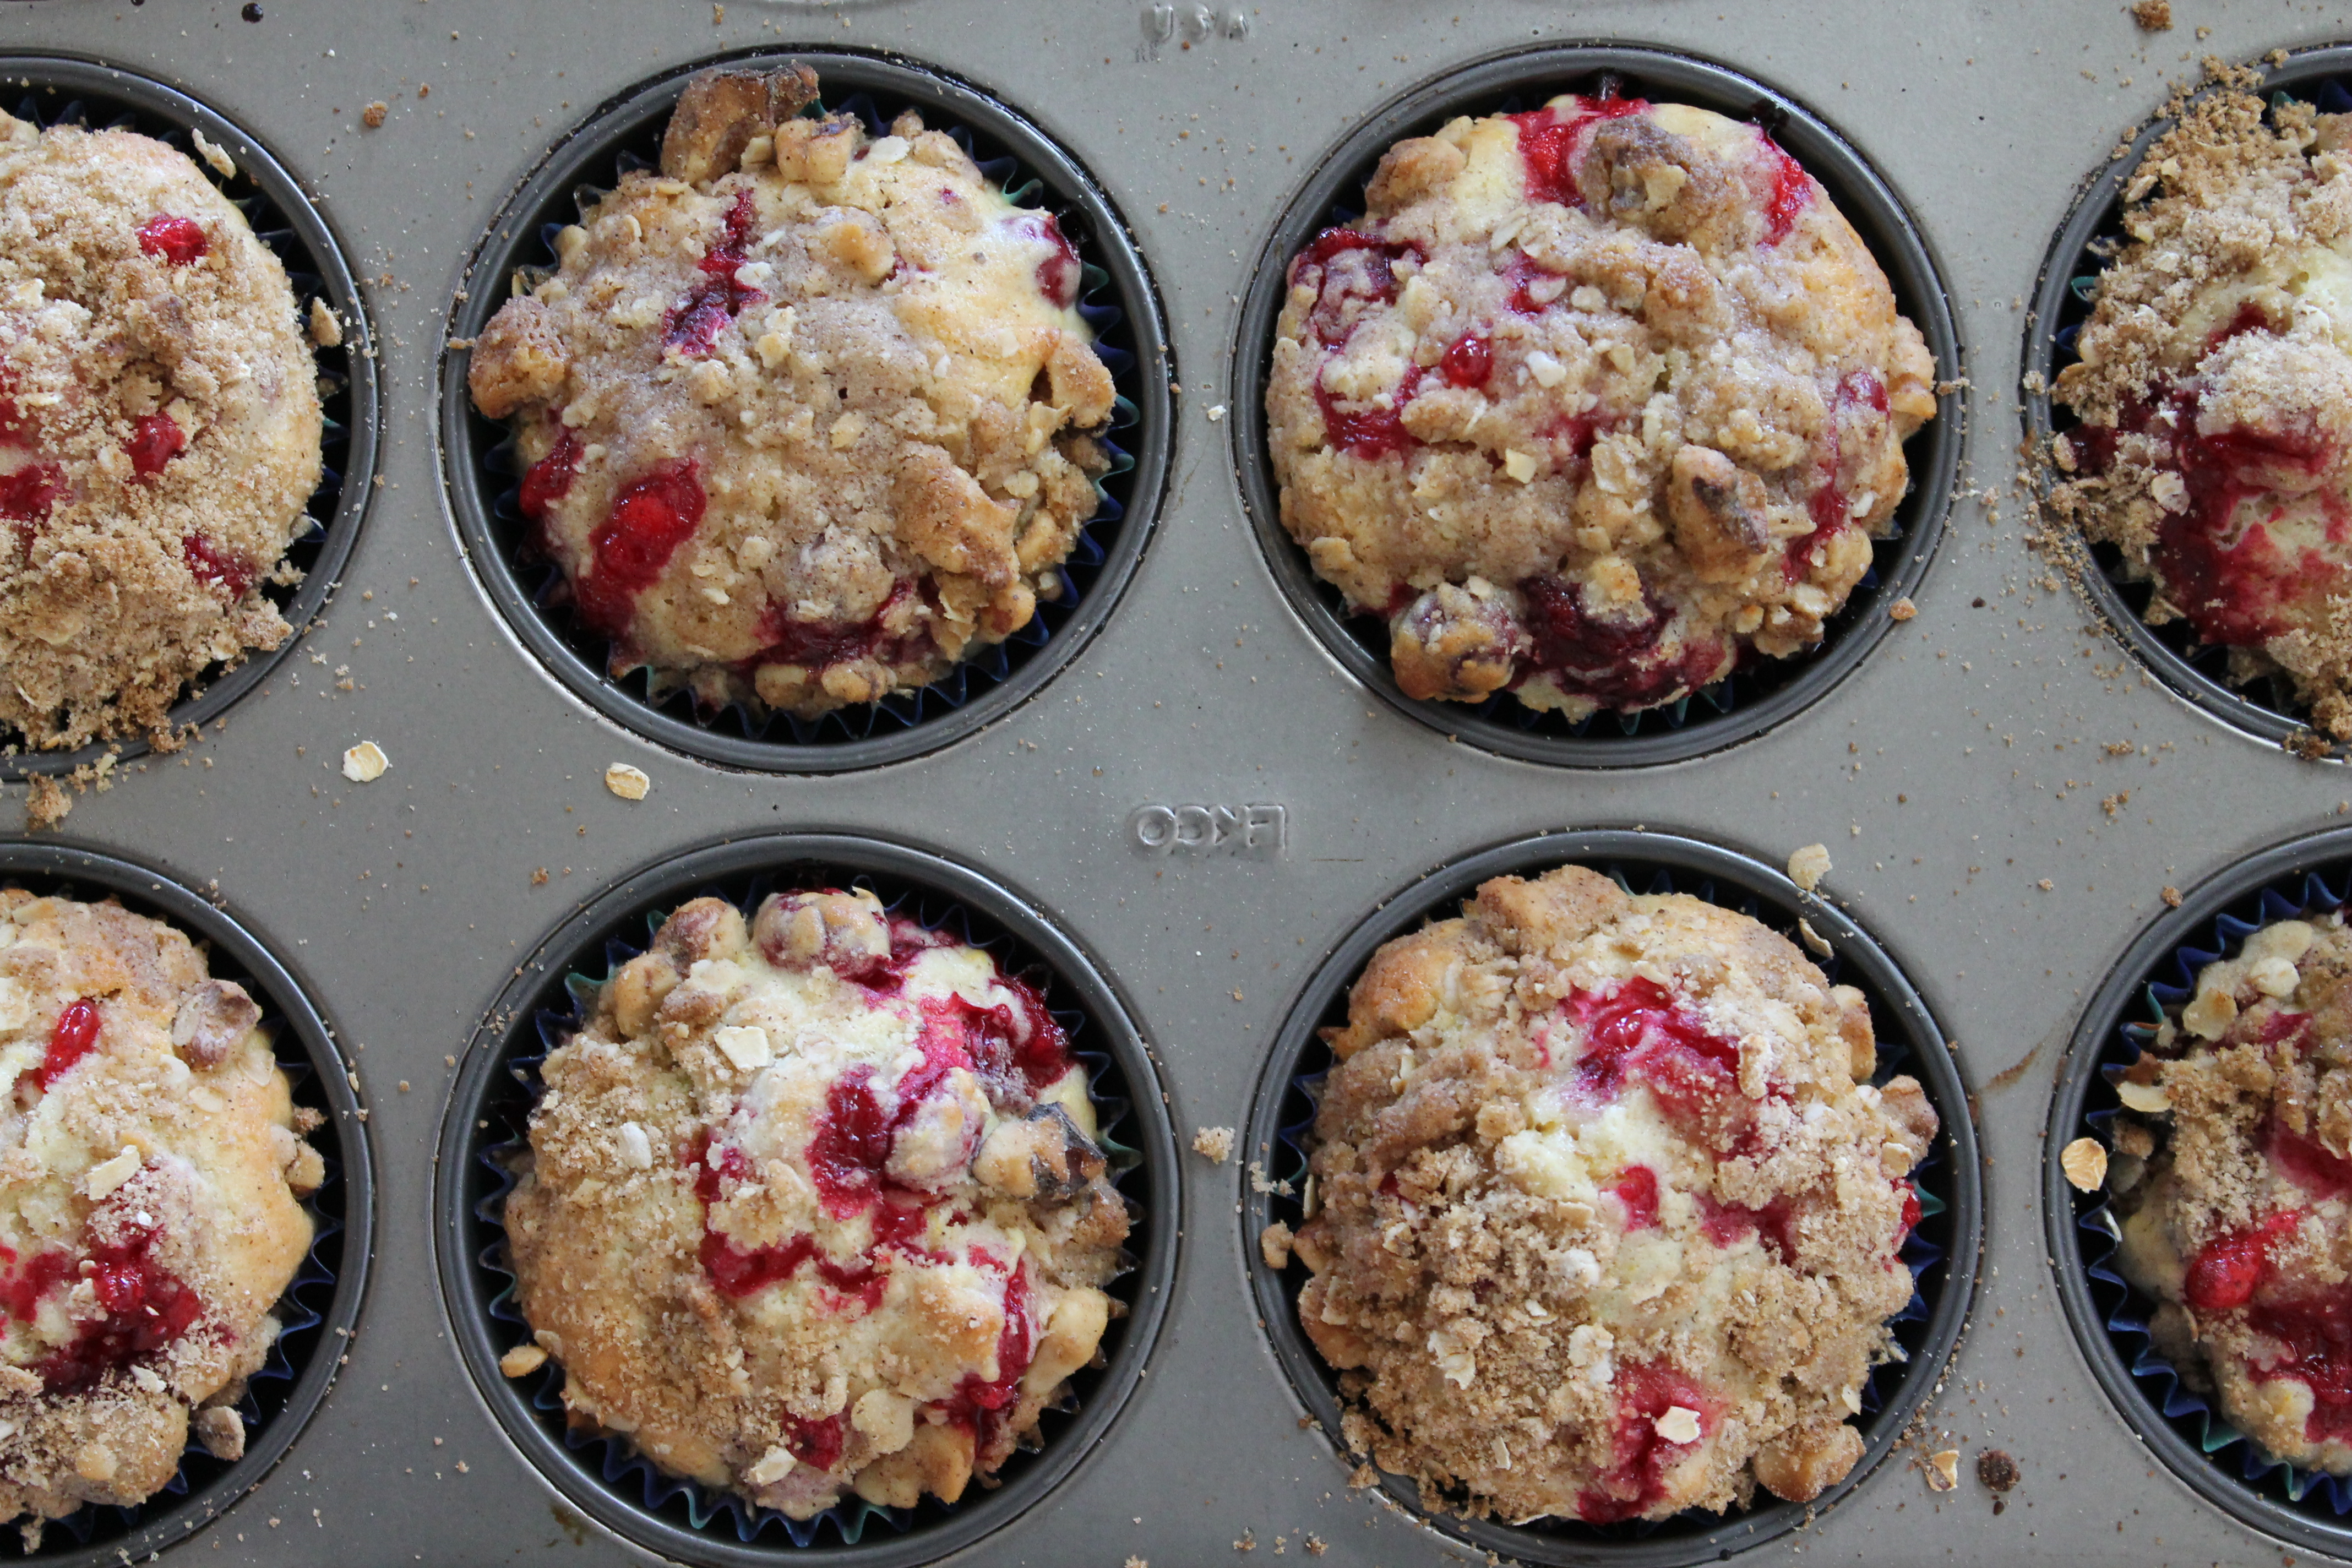 Cape Cod Cranberry Orange Muffins – The Salted Cookie